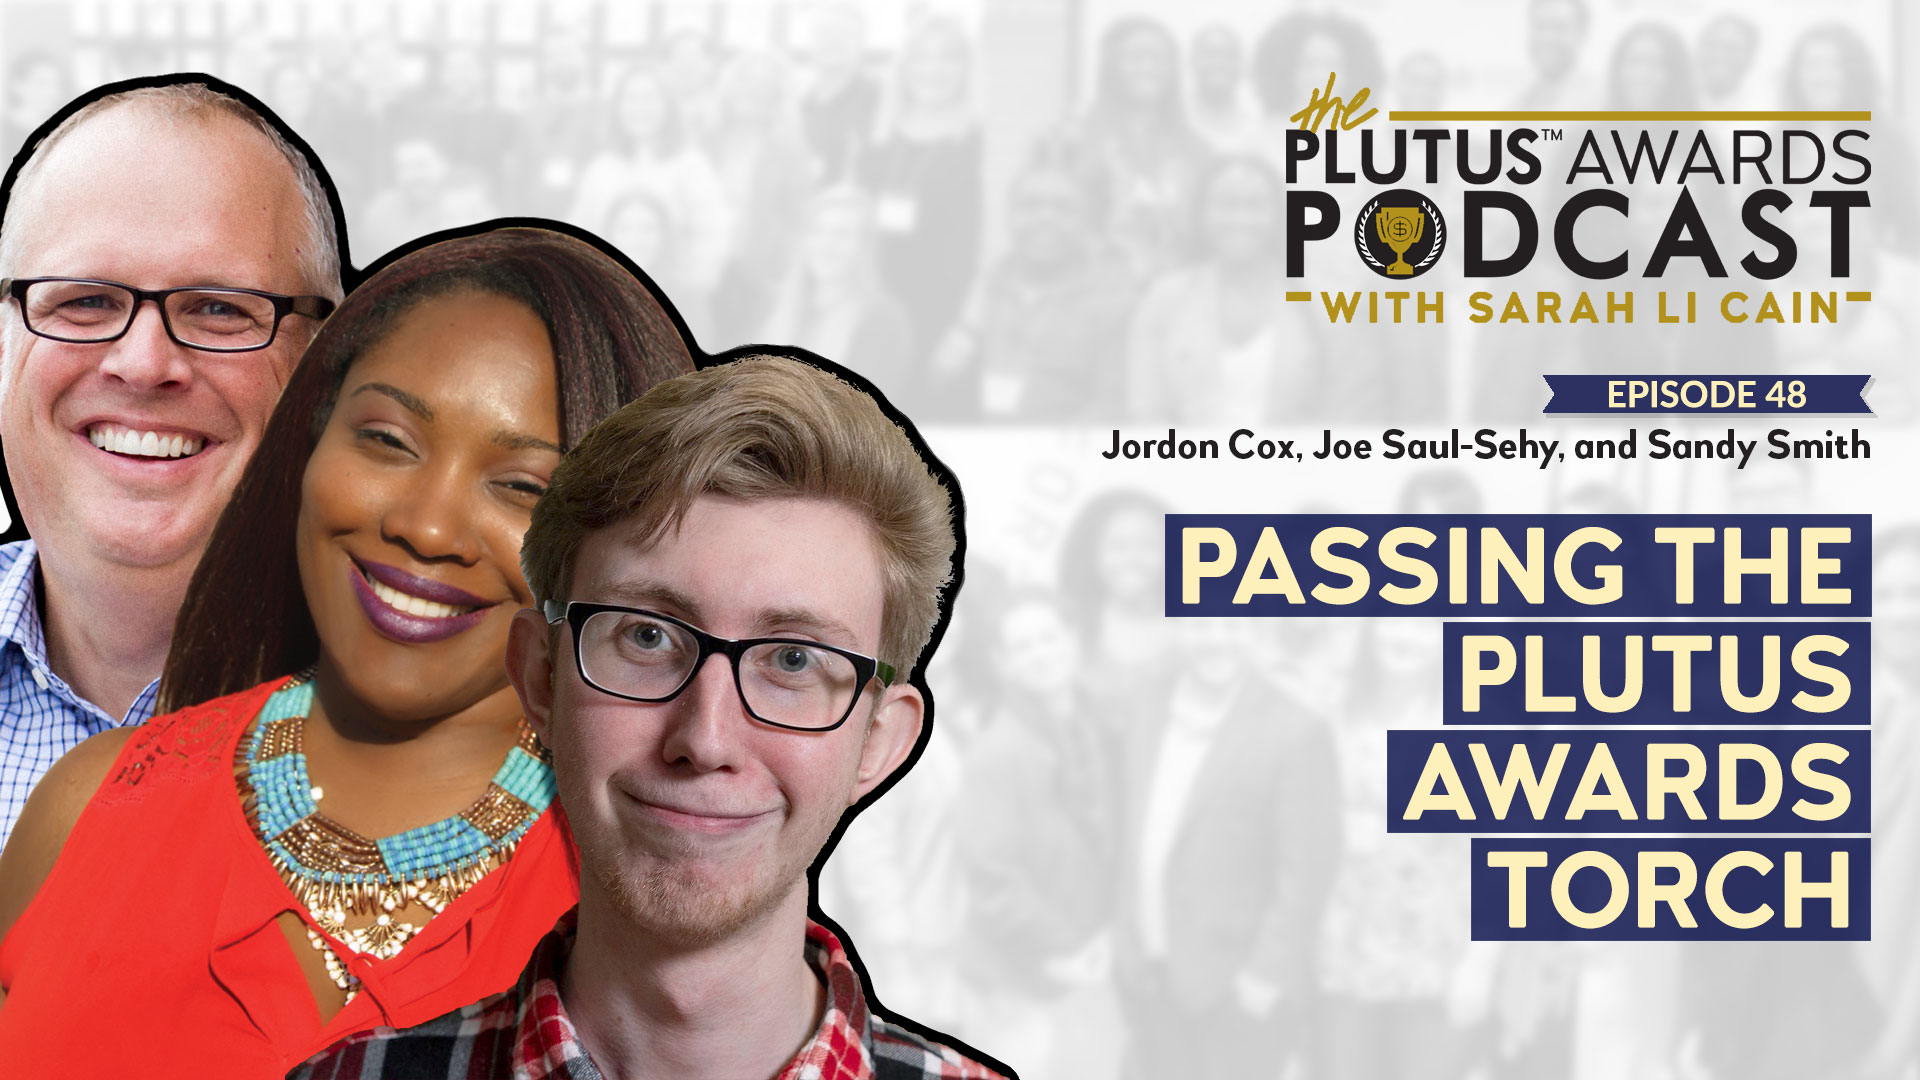 Plutus Awards Podcast - Passing the Plutus Awards Torch Featured Image